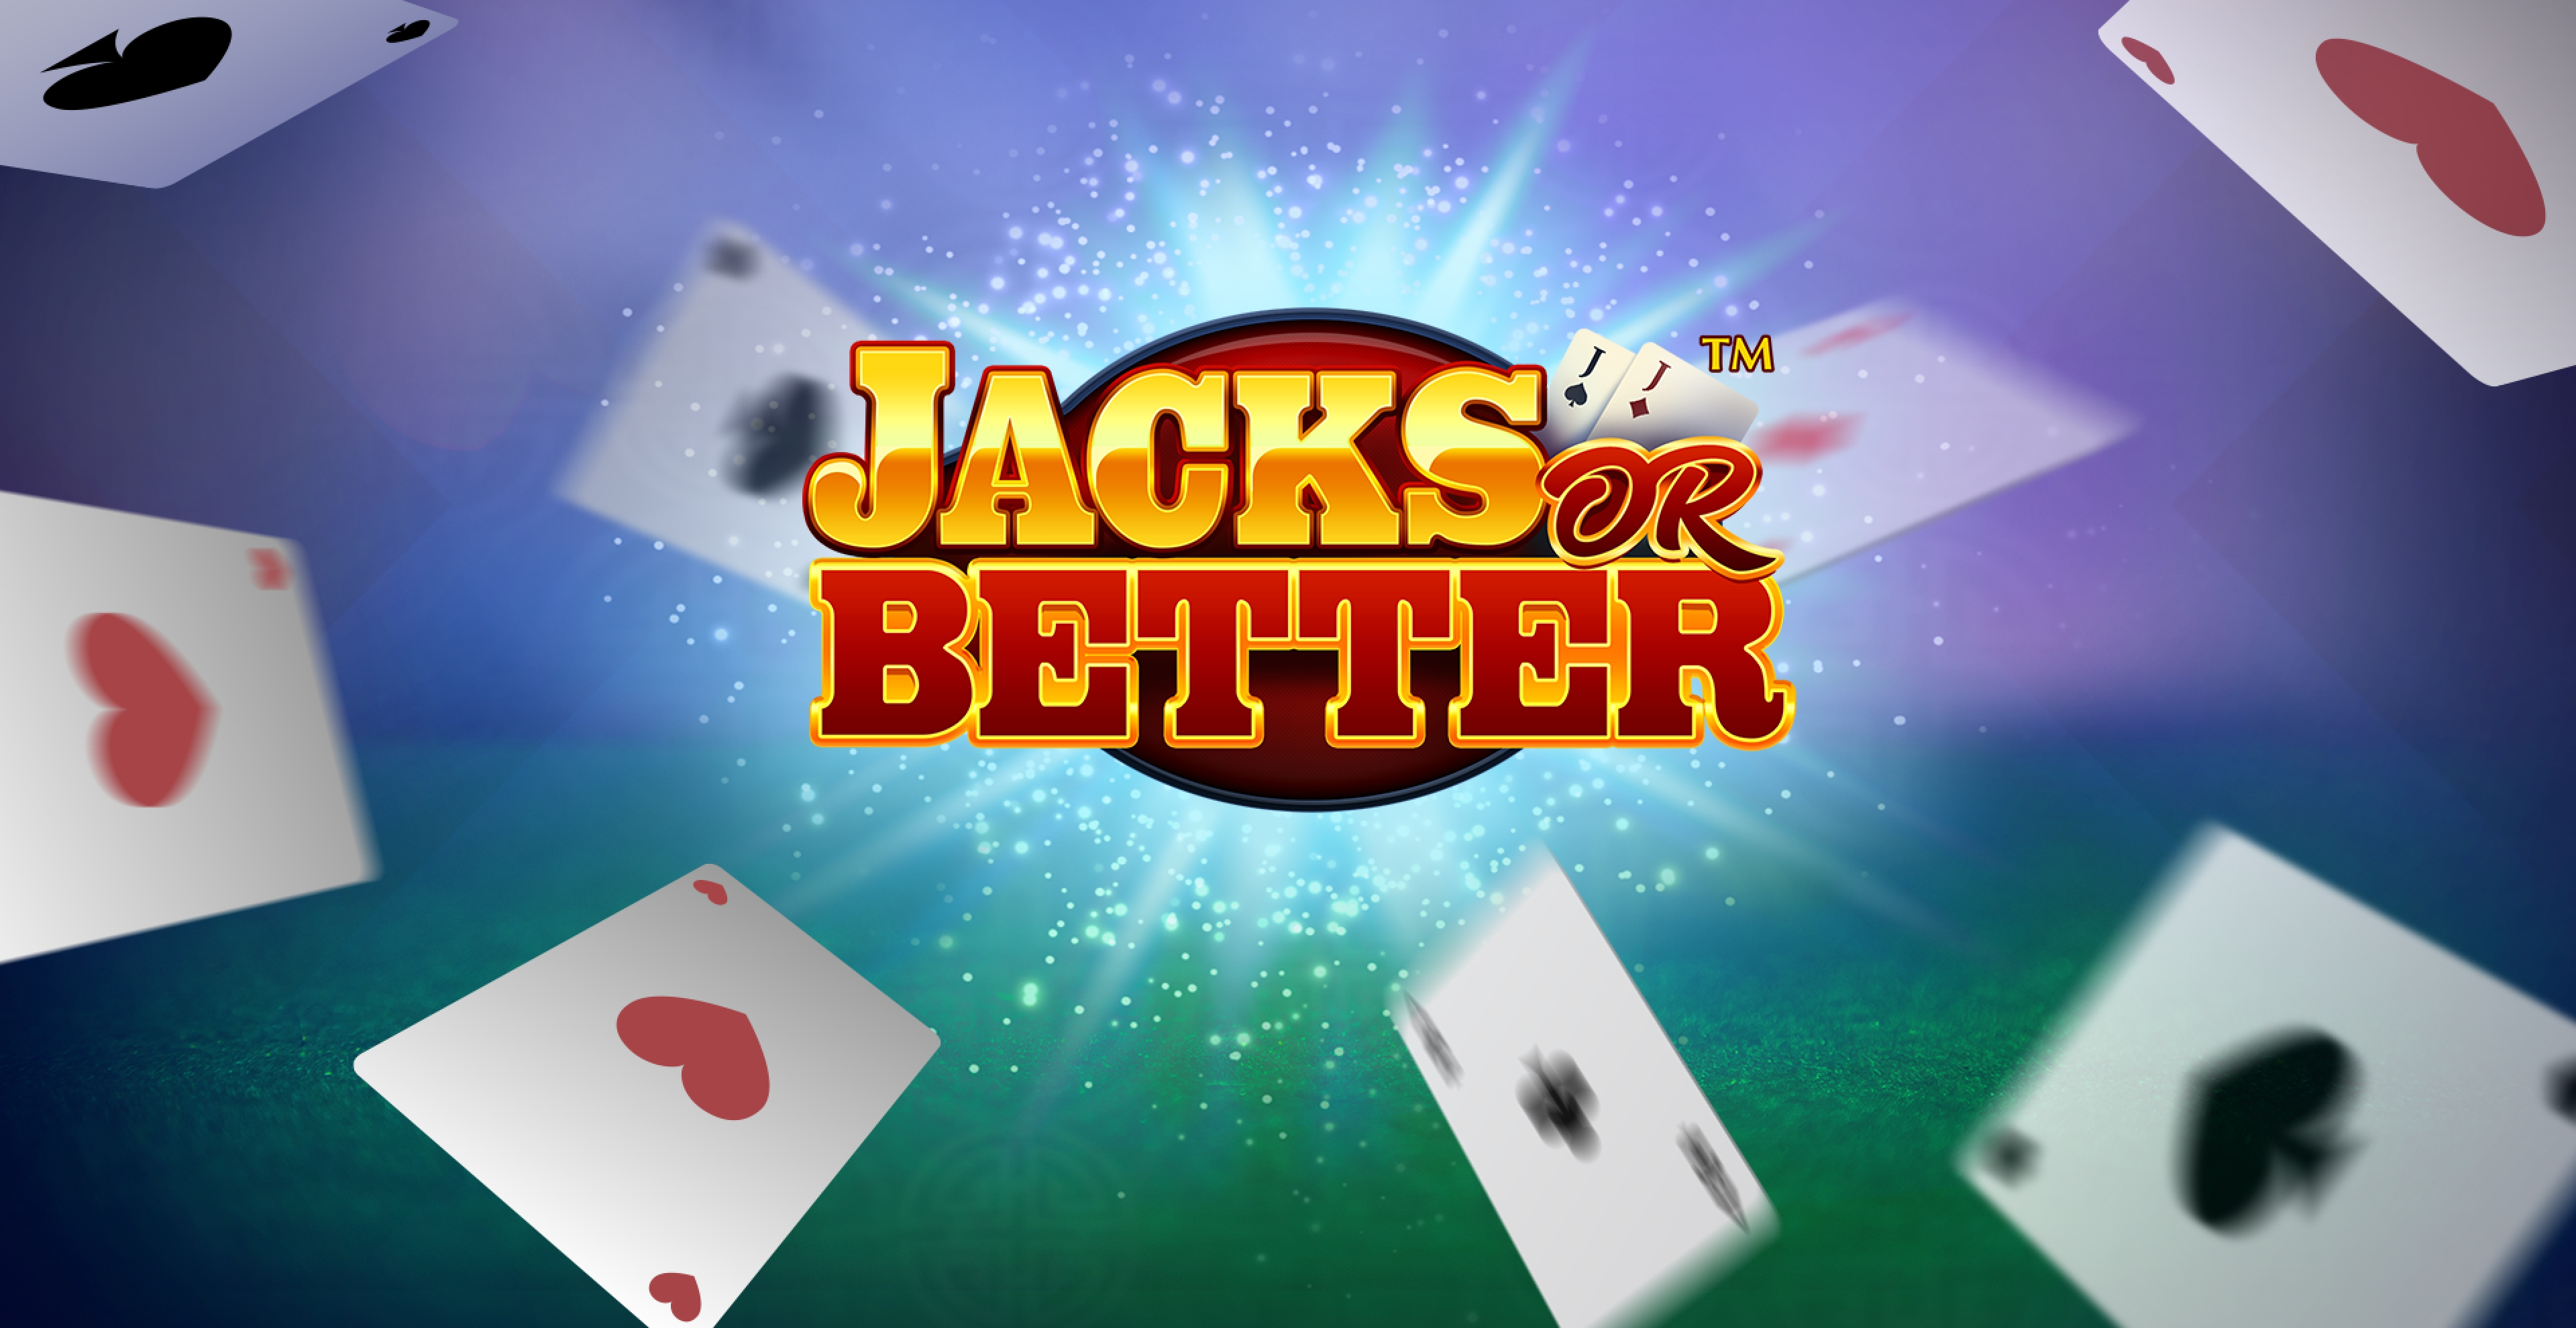 Win Money in Jacks or Better (Skywind Group) Free Slot Game by Skywind Group